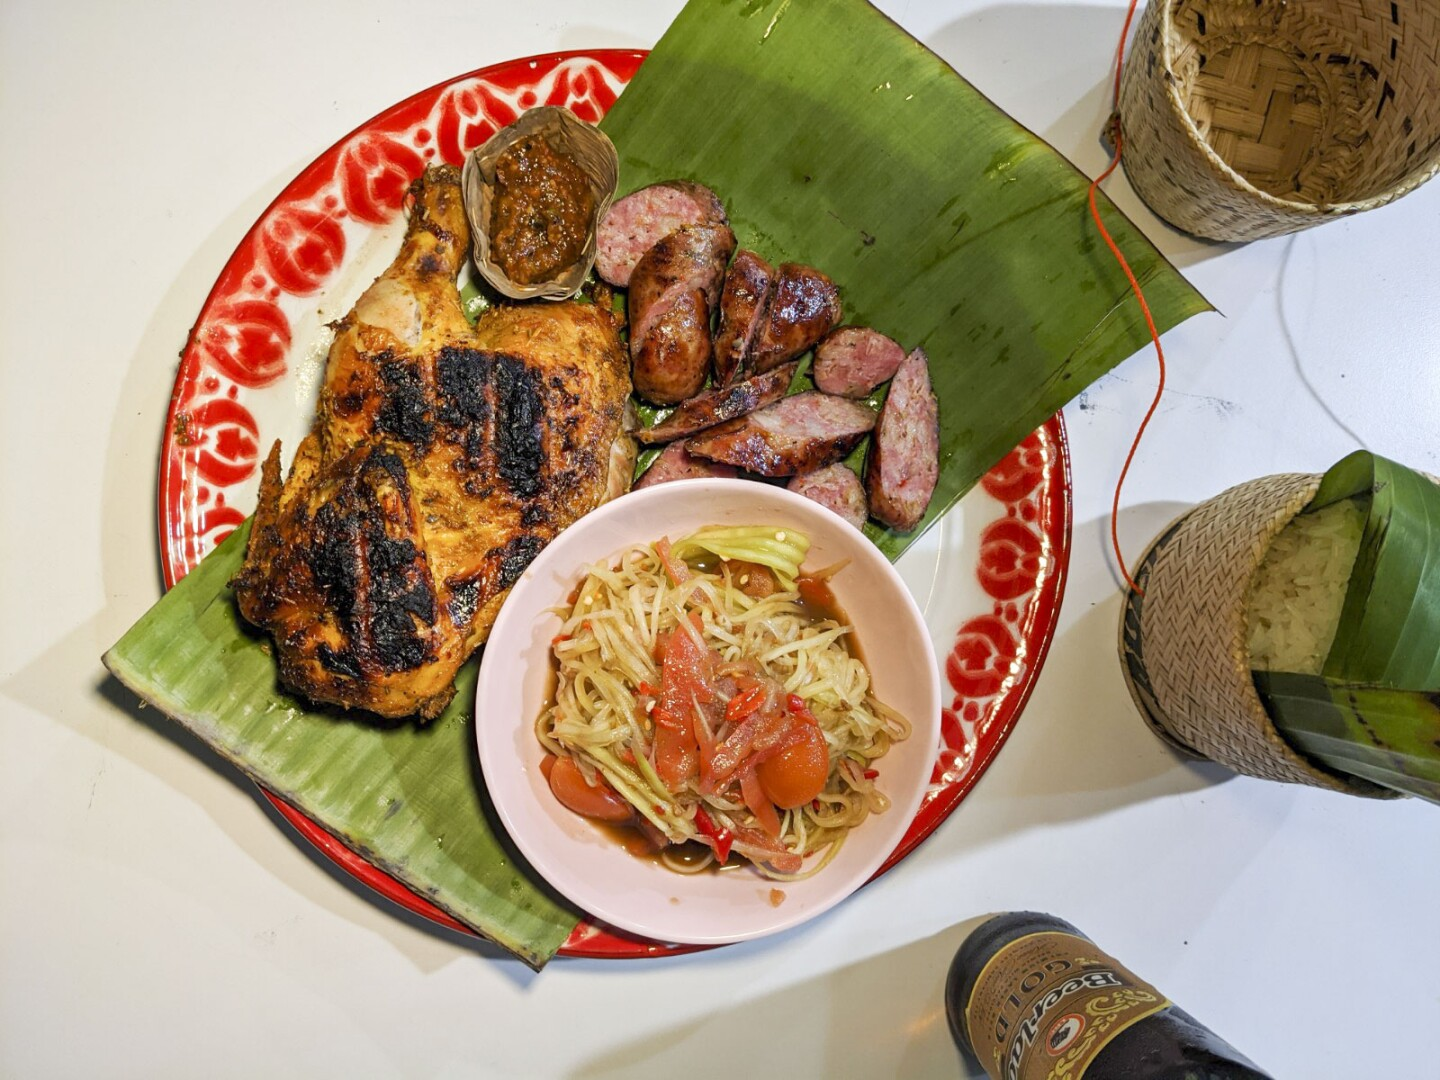 Lao sausage and chicken with papaya salad plate served with sticky rice and beer on the side. The chicken is a thigh and leg with a slight char on the skin. The Lao sausage is cut in thin slices.